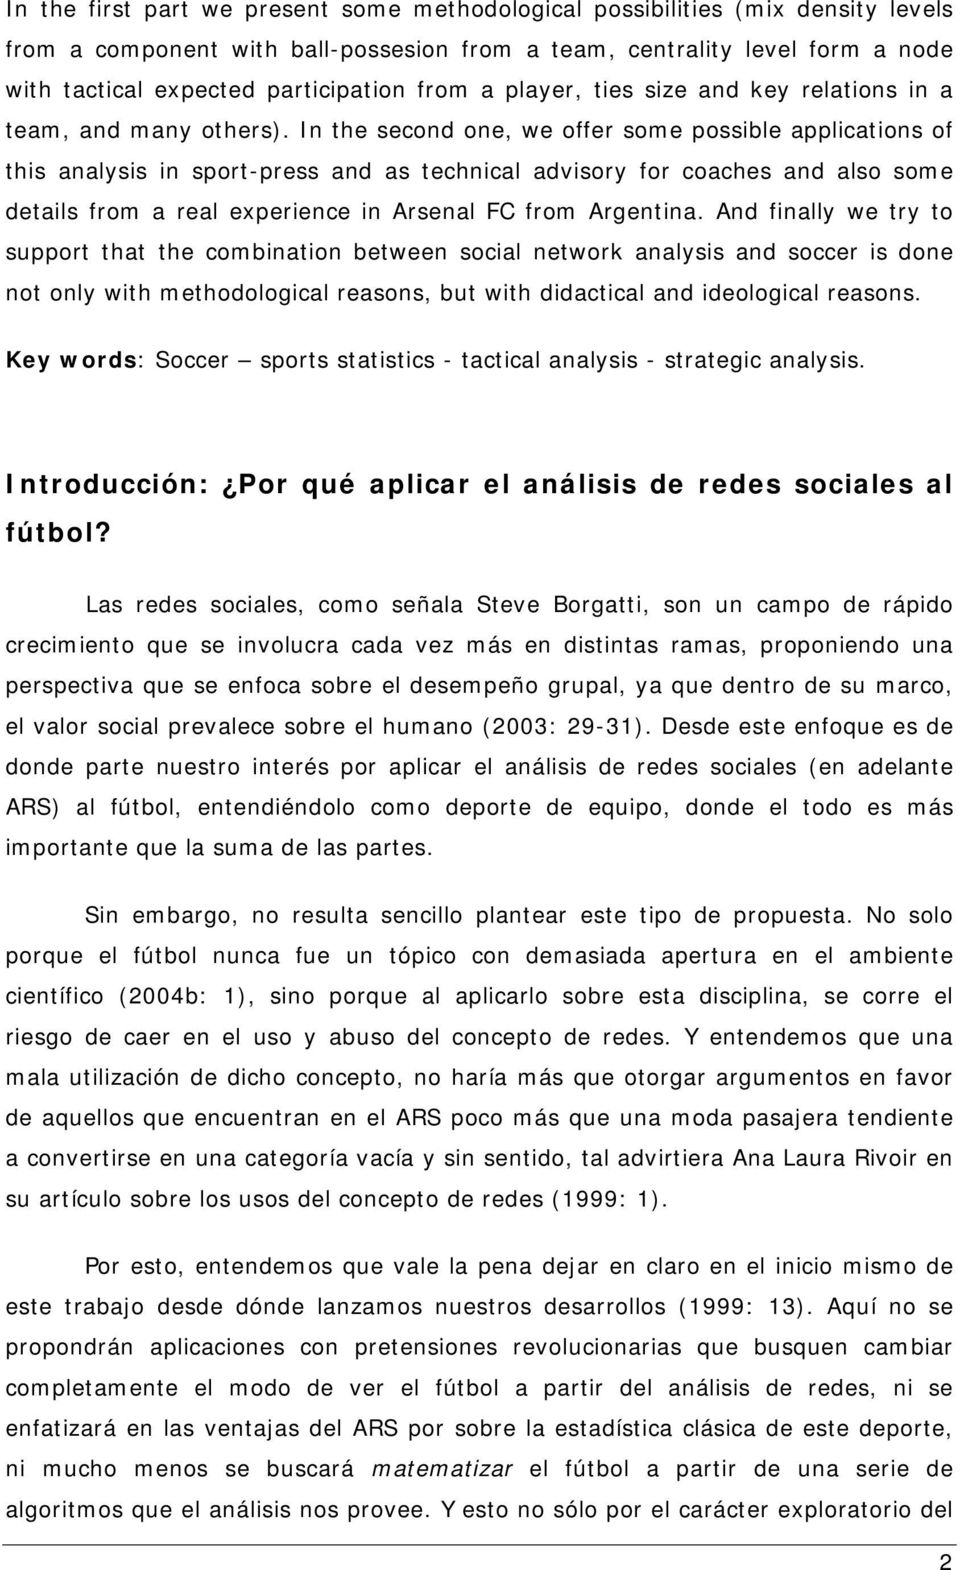 In the second one, we offer some possible applications of this analysis in sport-press and as technical advisory for coaches and also some details from a real experience in Arsenal FC from Argentina.